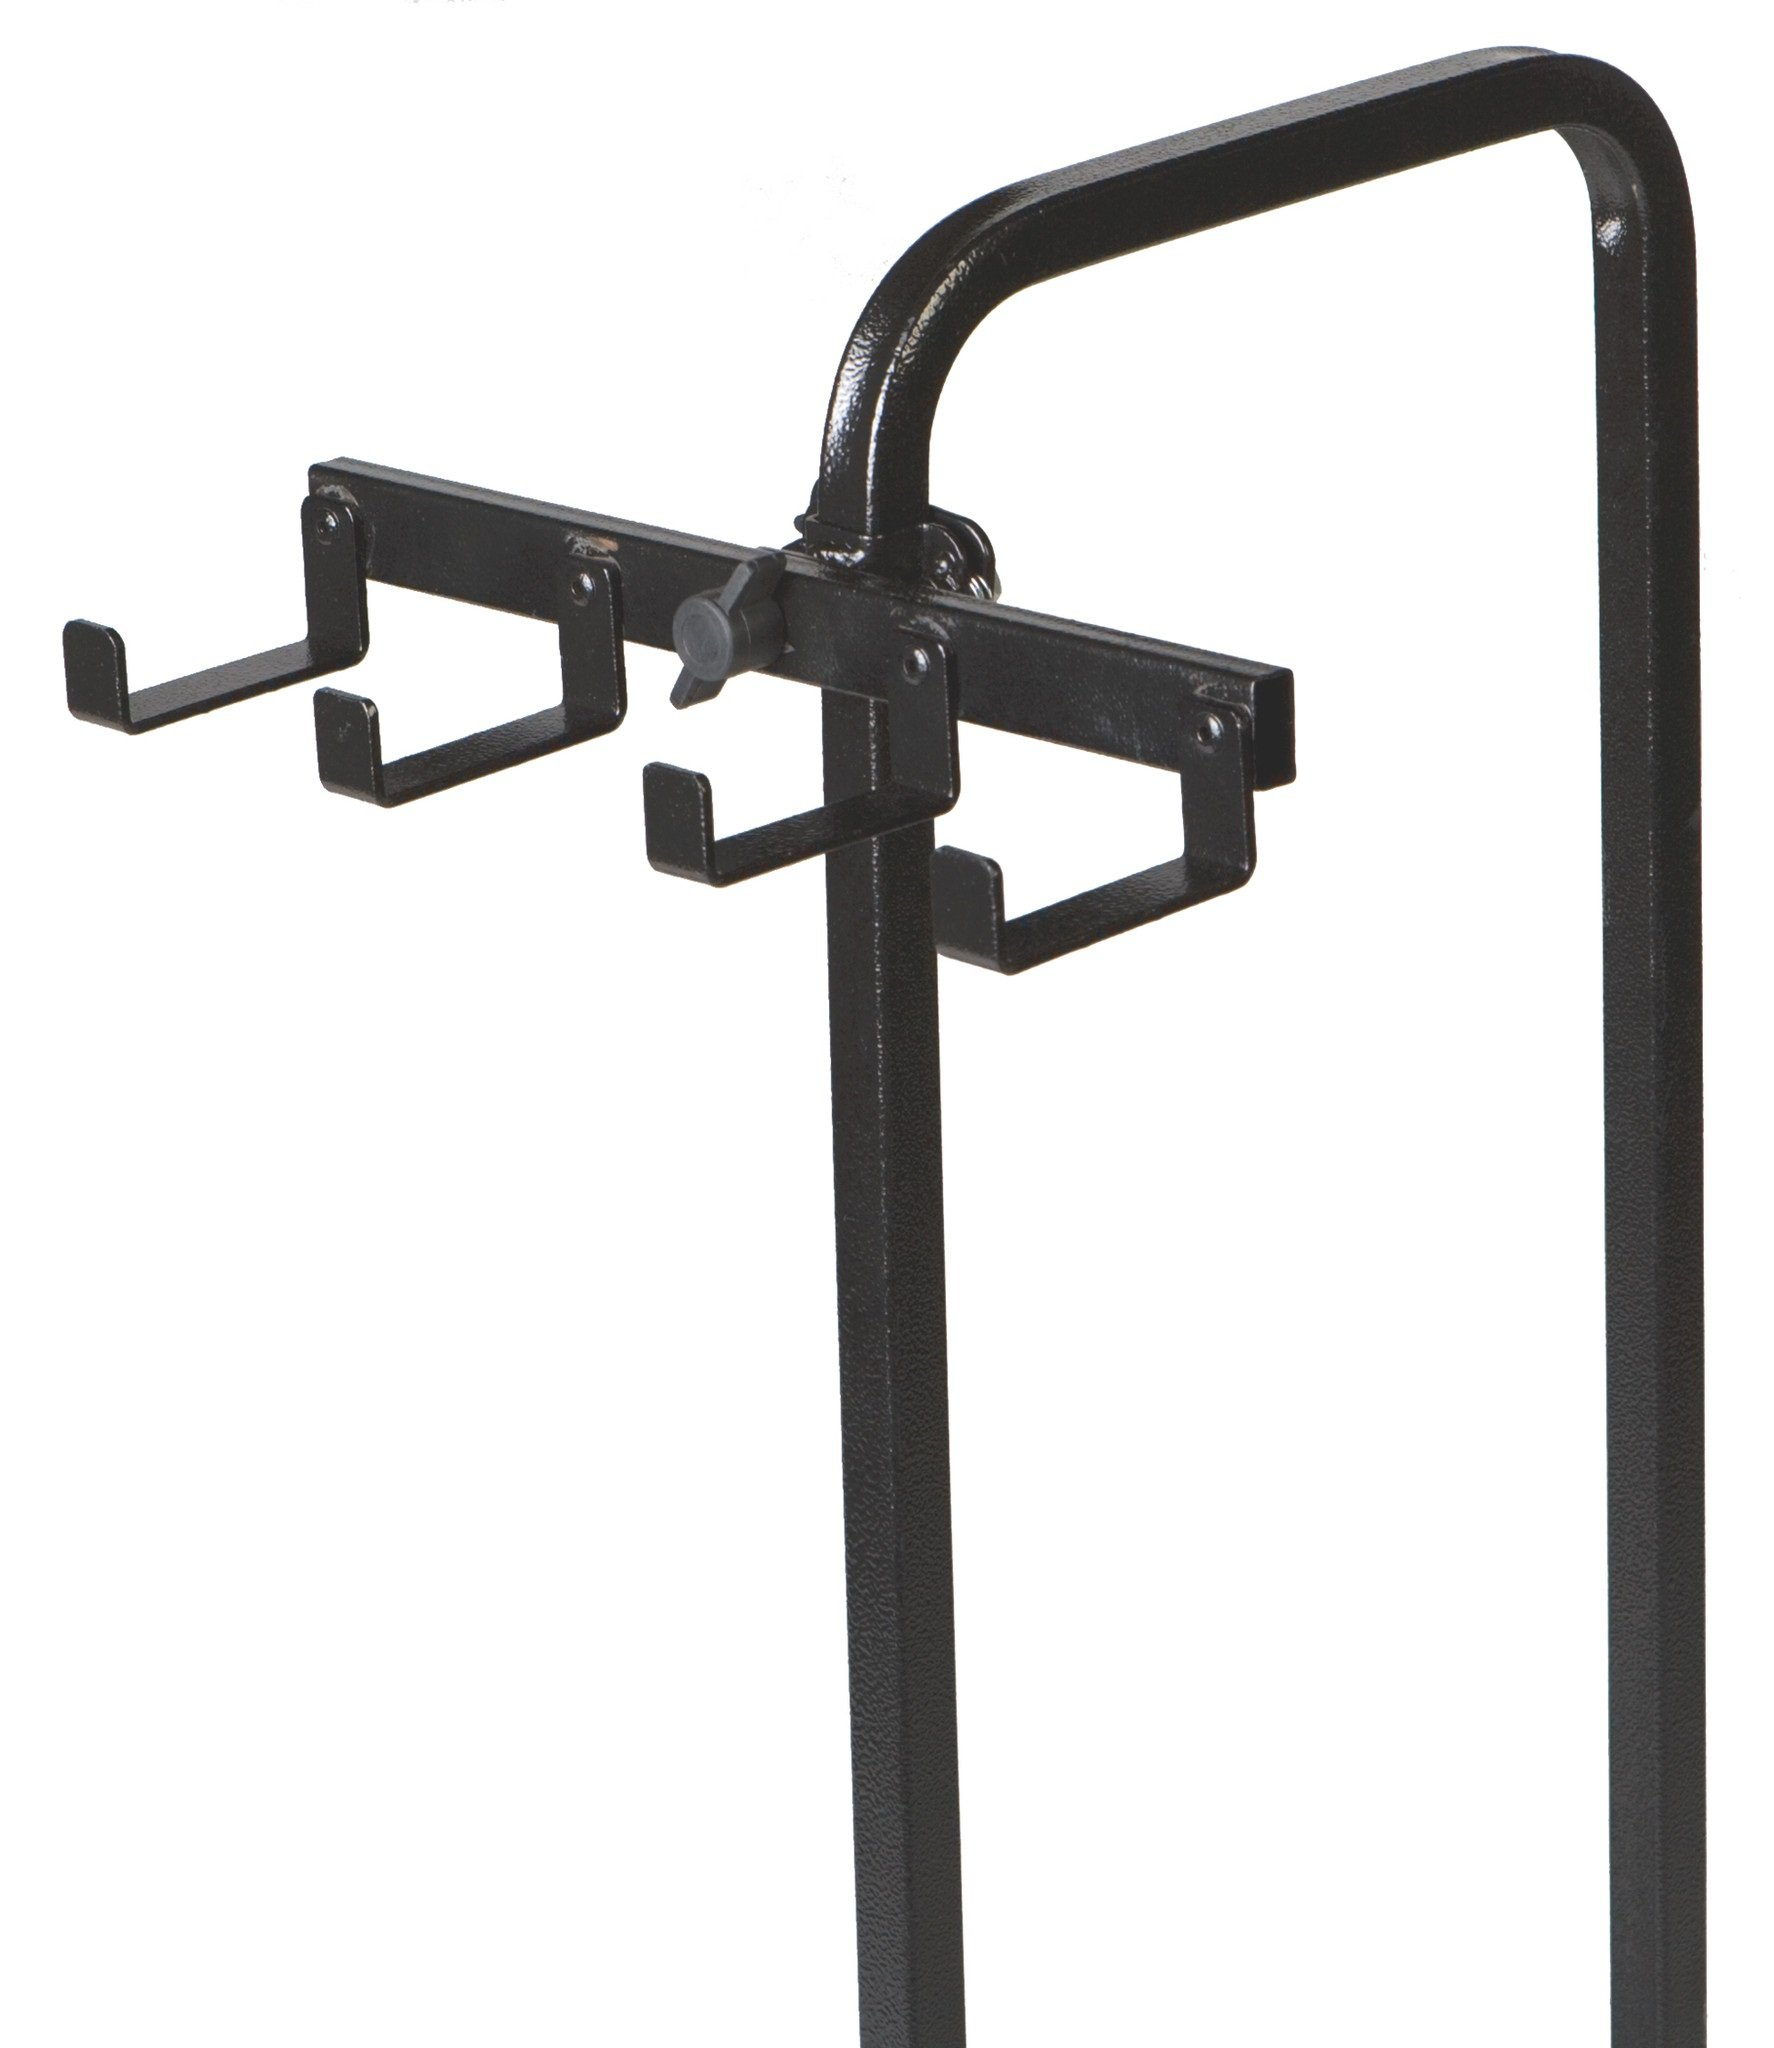 Rock-N-Roller RCH1 Multi-Cart Headphone/Cable/Accessory Rack (for R2, R6, R8, R10, R11G, and R12 Multi-Carts)